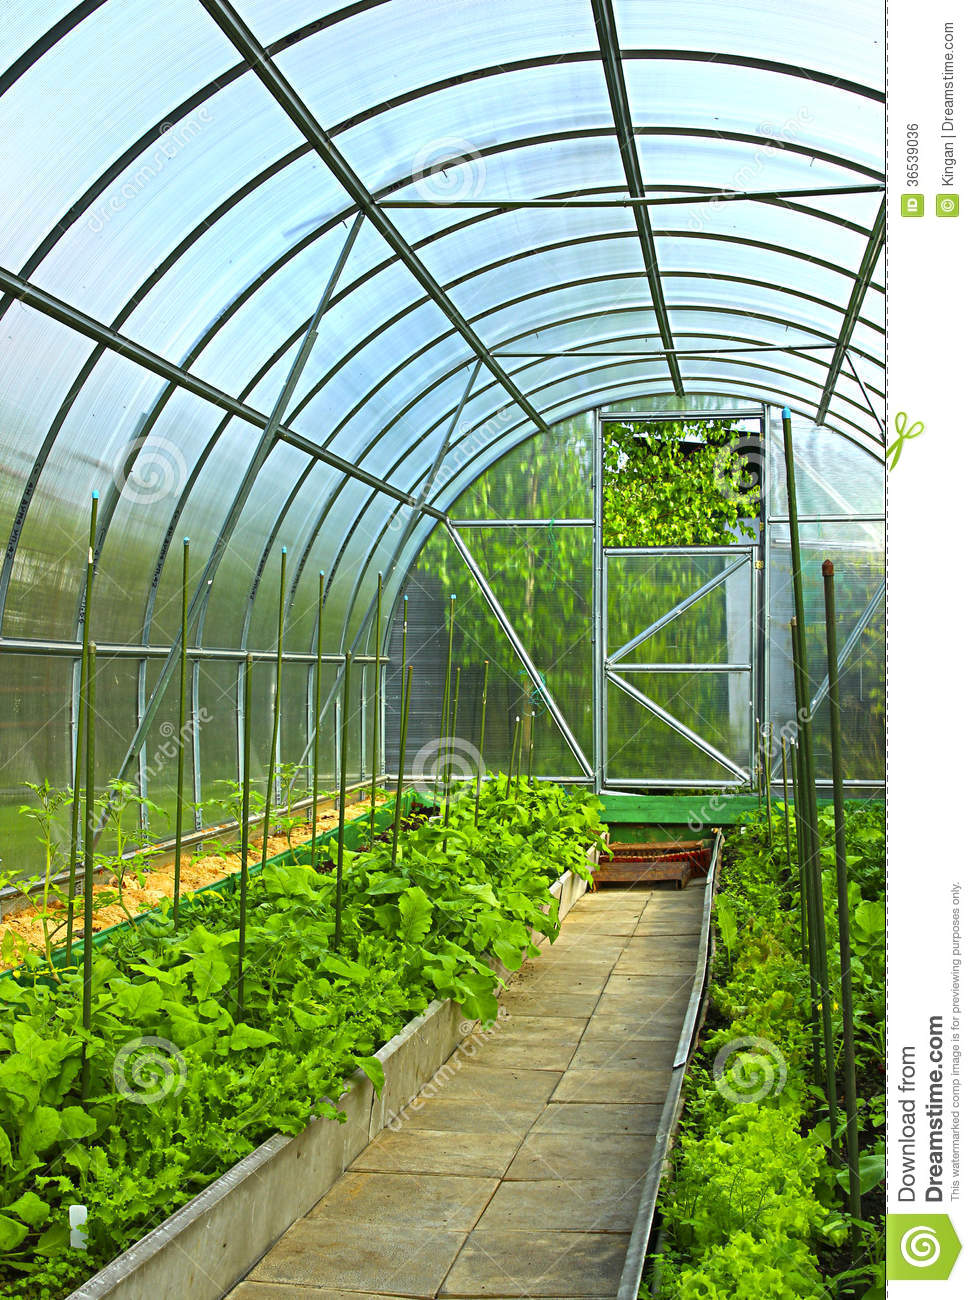 Greenhouse Growing Polycarbonate Transparent Vegetables ...